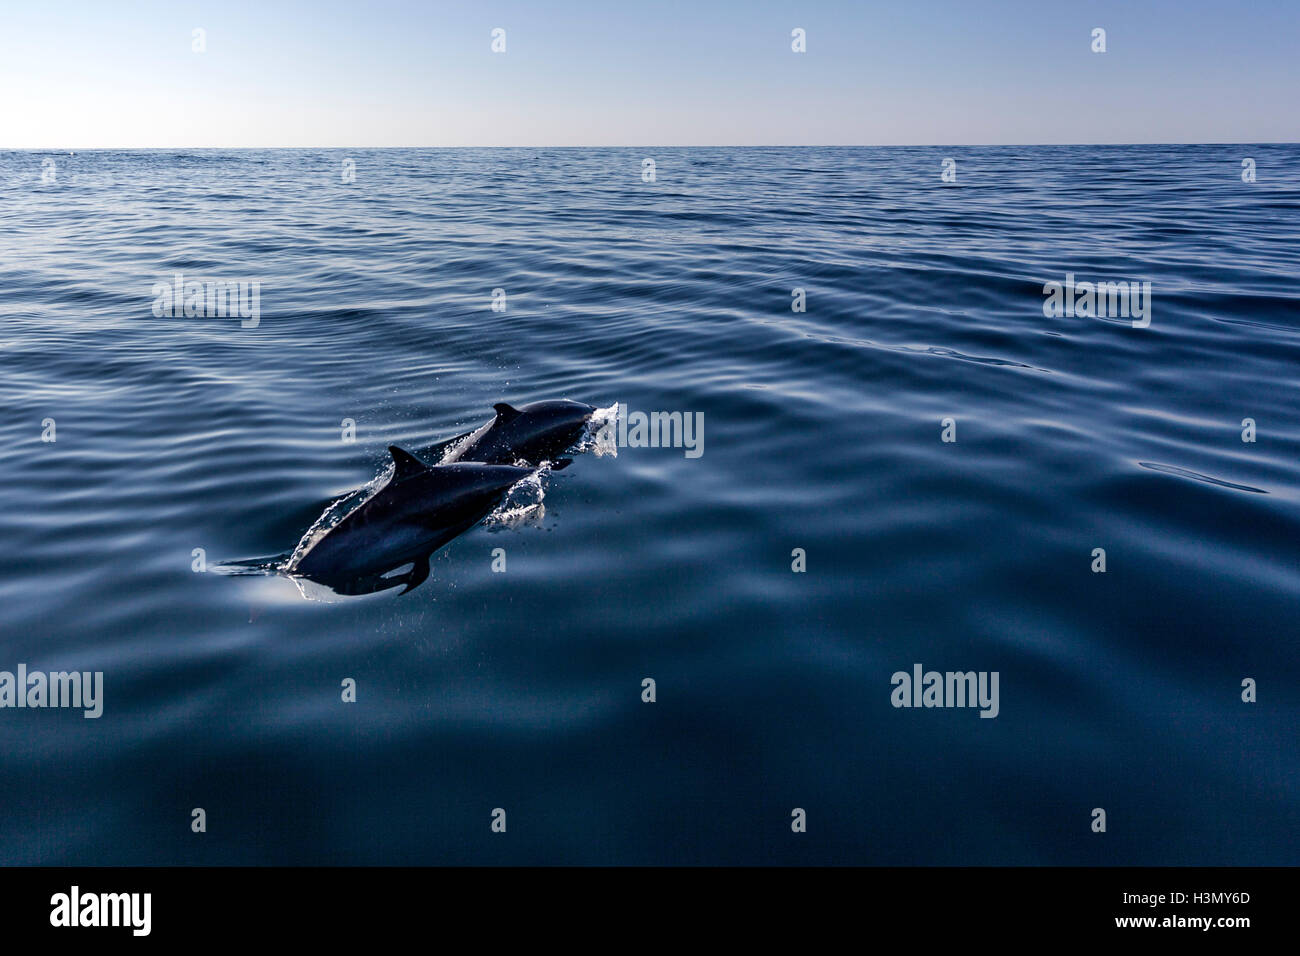 Two Pantropical Dolphin breaching for air, Port St. Johns, South Africa - Stock Image